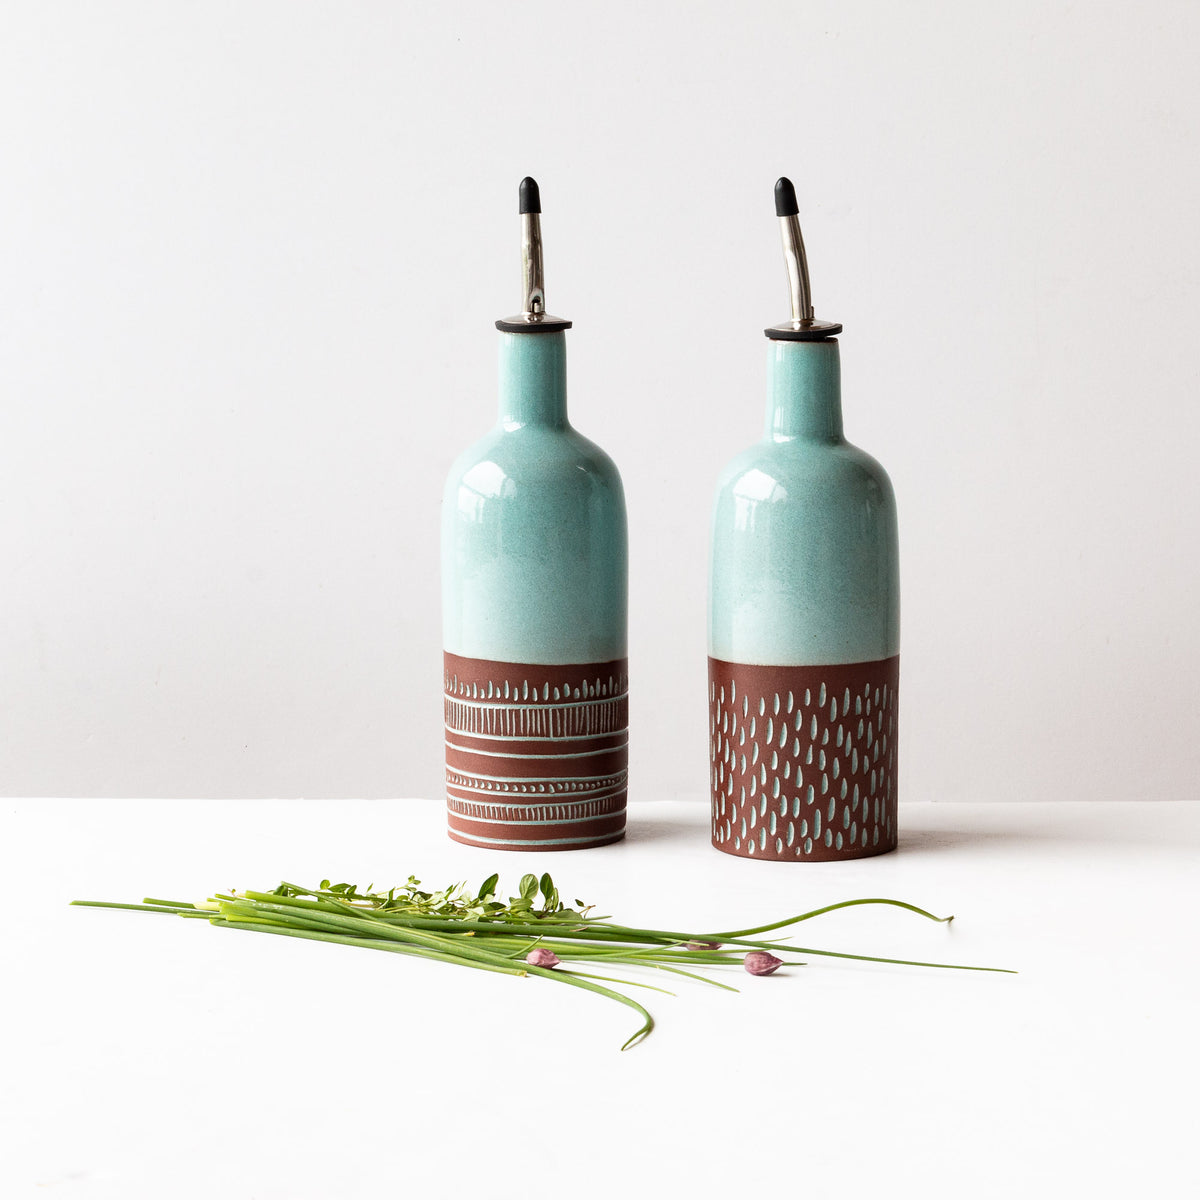 Two Oil or Vinegar Bottles - Handmade in Dark Red Clay Pottery - Sold by Chic & Basta